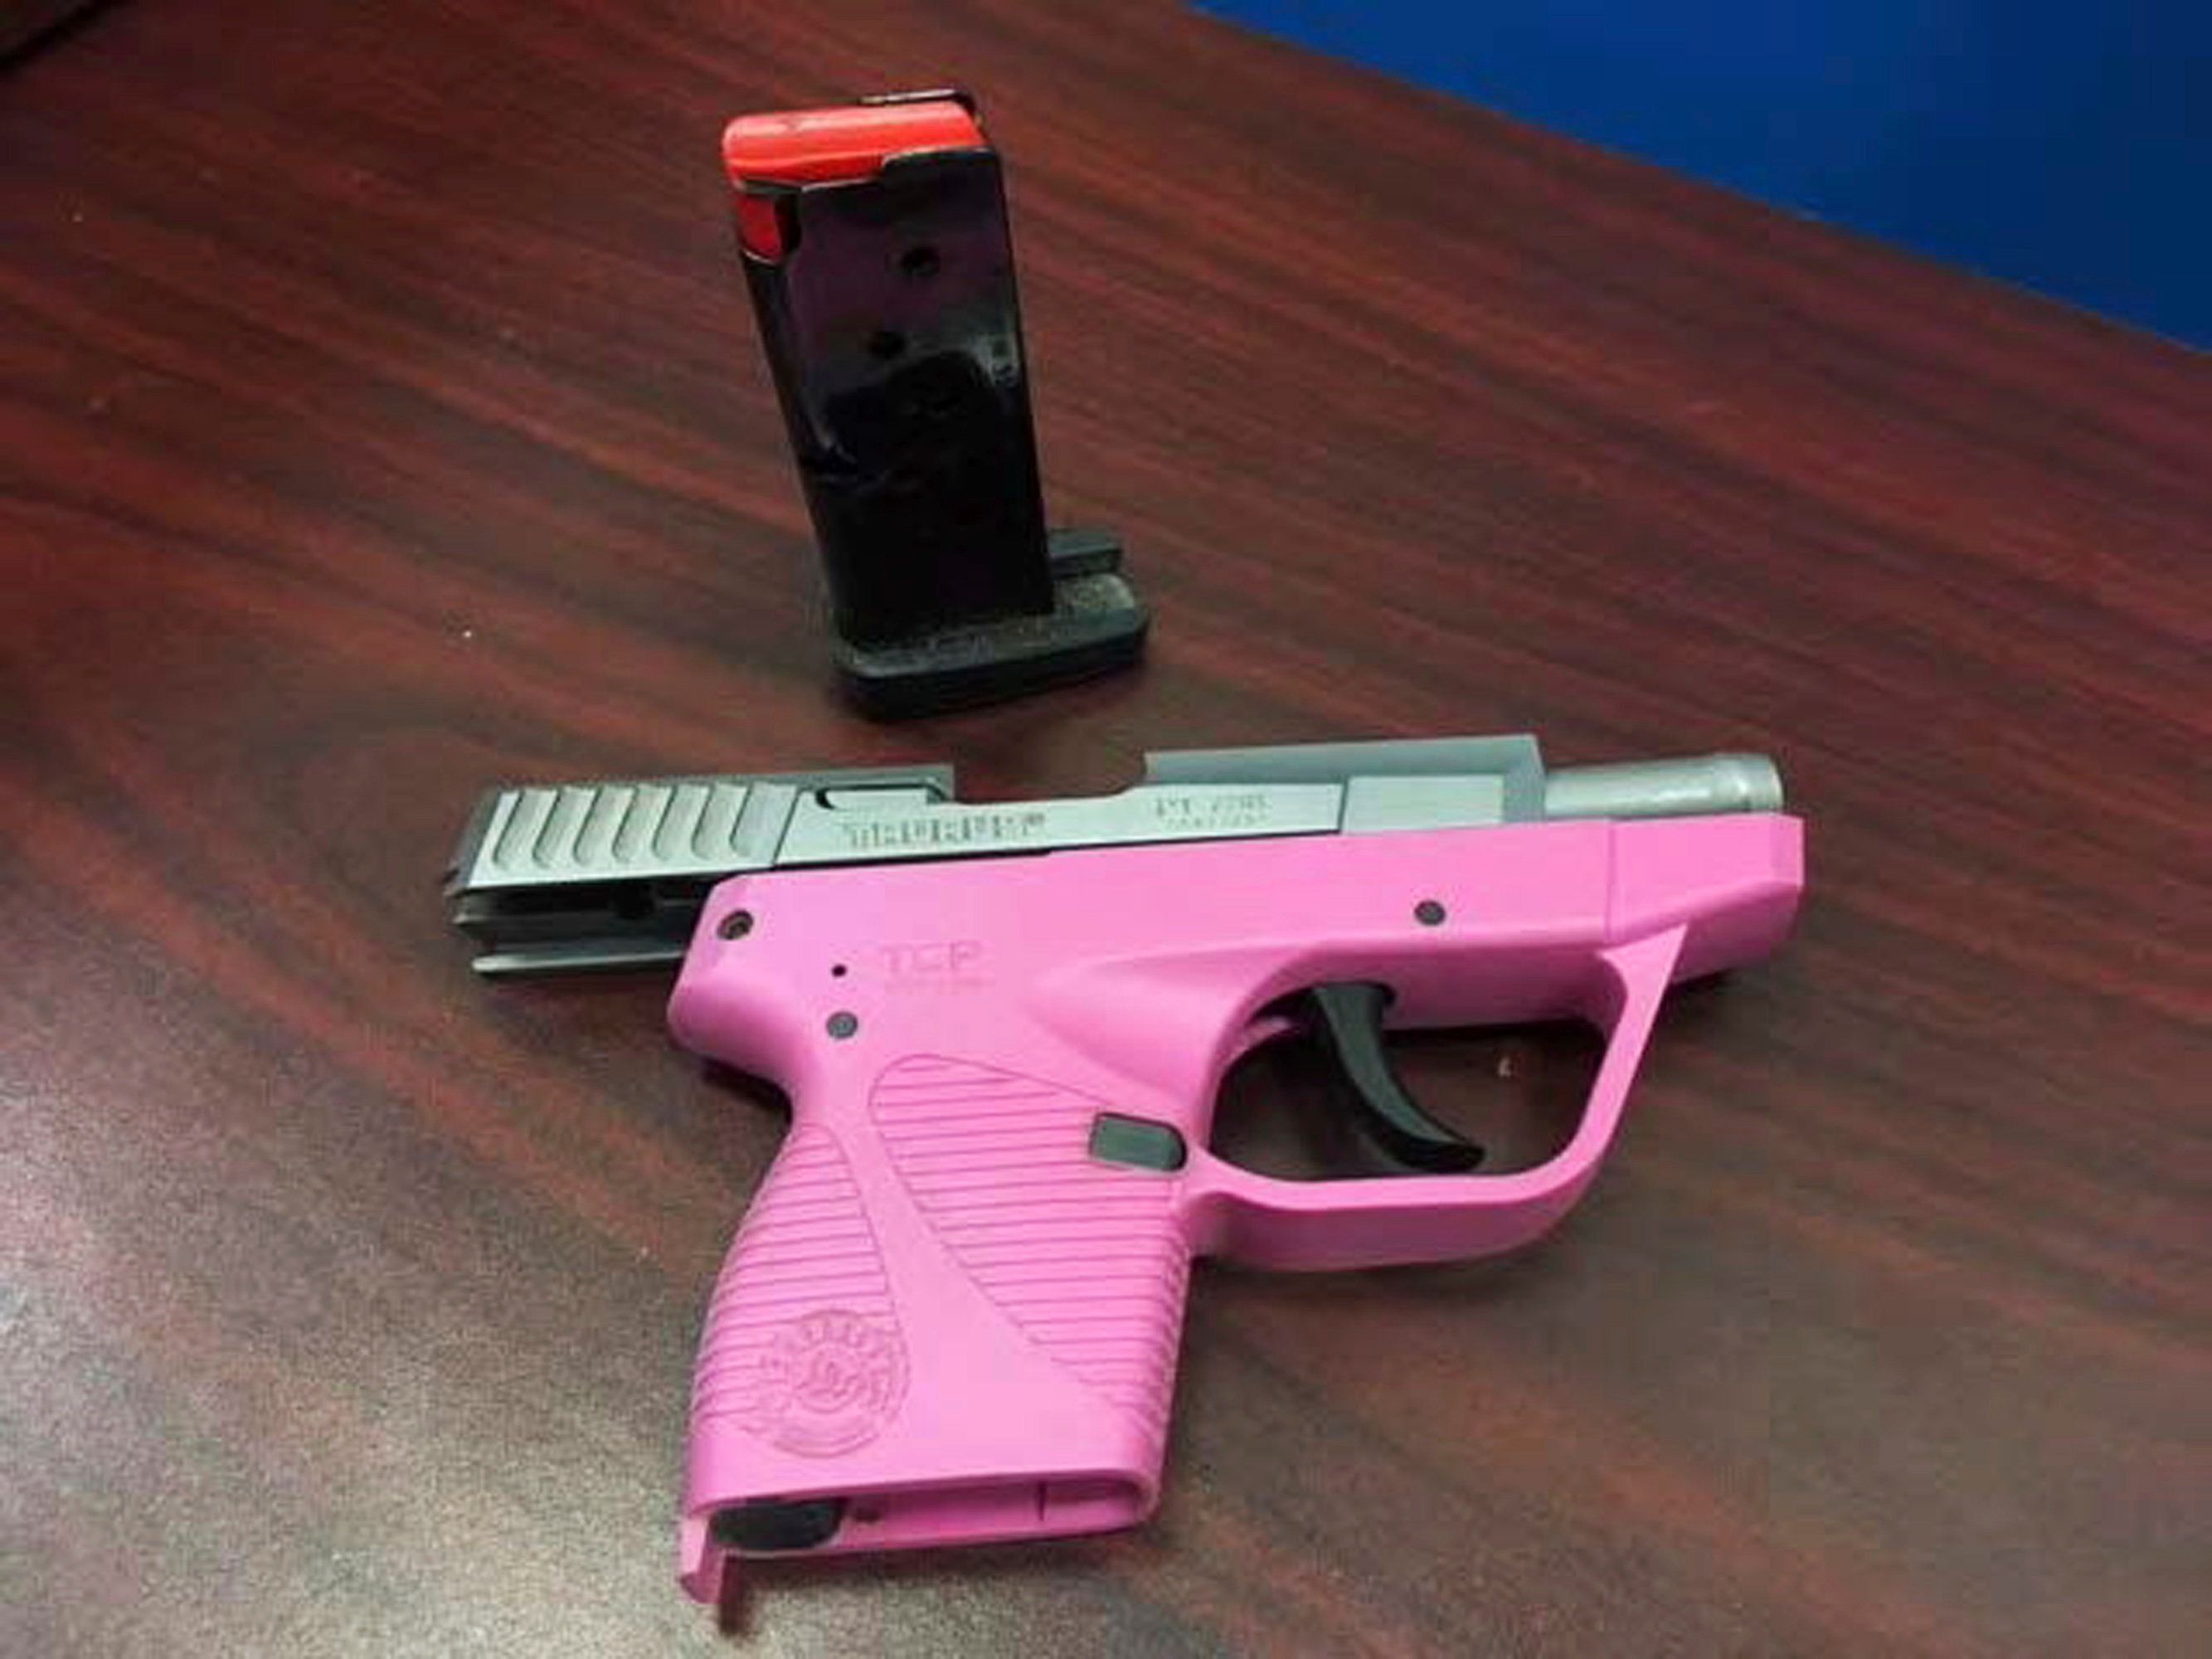 One of 30 guns confiscated at Hartsfield Jackson Atlanta International Airport security checkpoints in May is pictured. The c